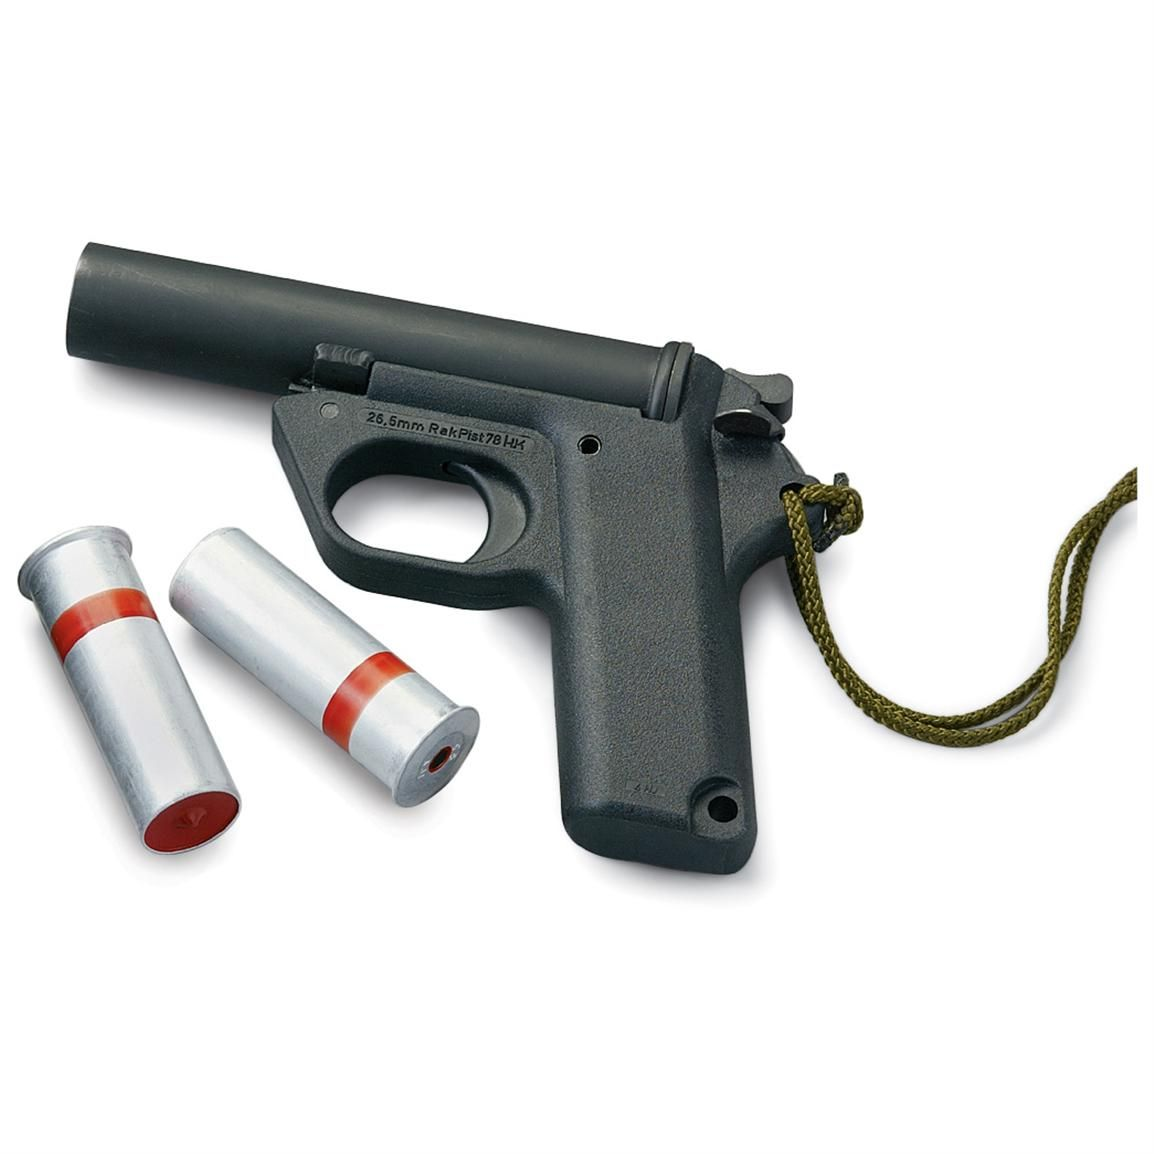 H&K Flare Pistol - A top-quality German-made Flare Gun for ...